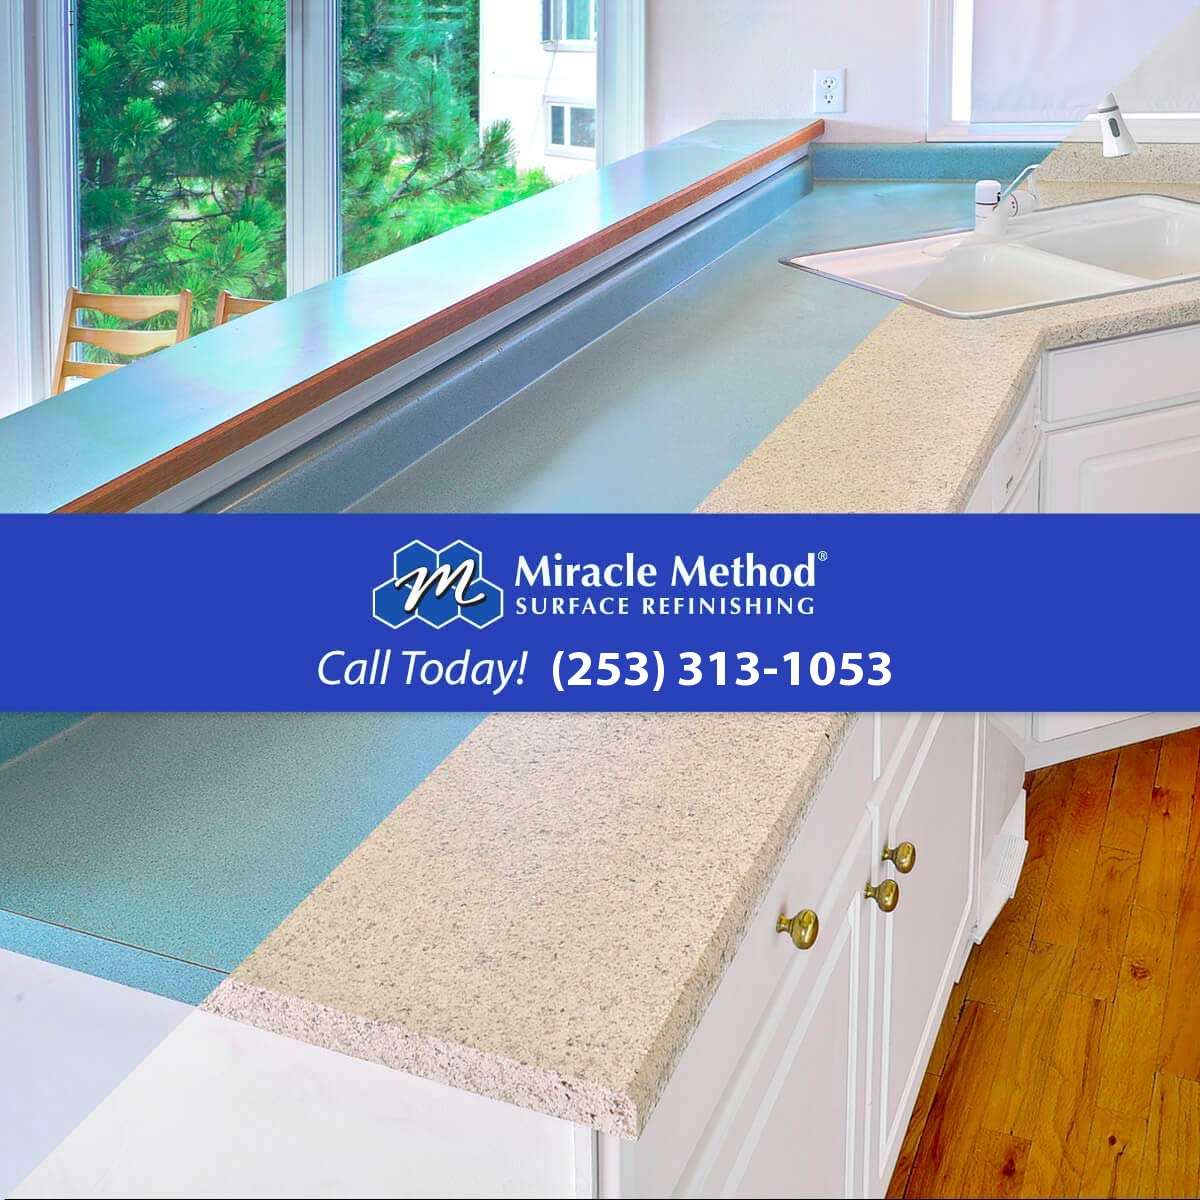 Fiberglass Tub Repair Tacoma, WA | Miracle Method of Tacoma